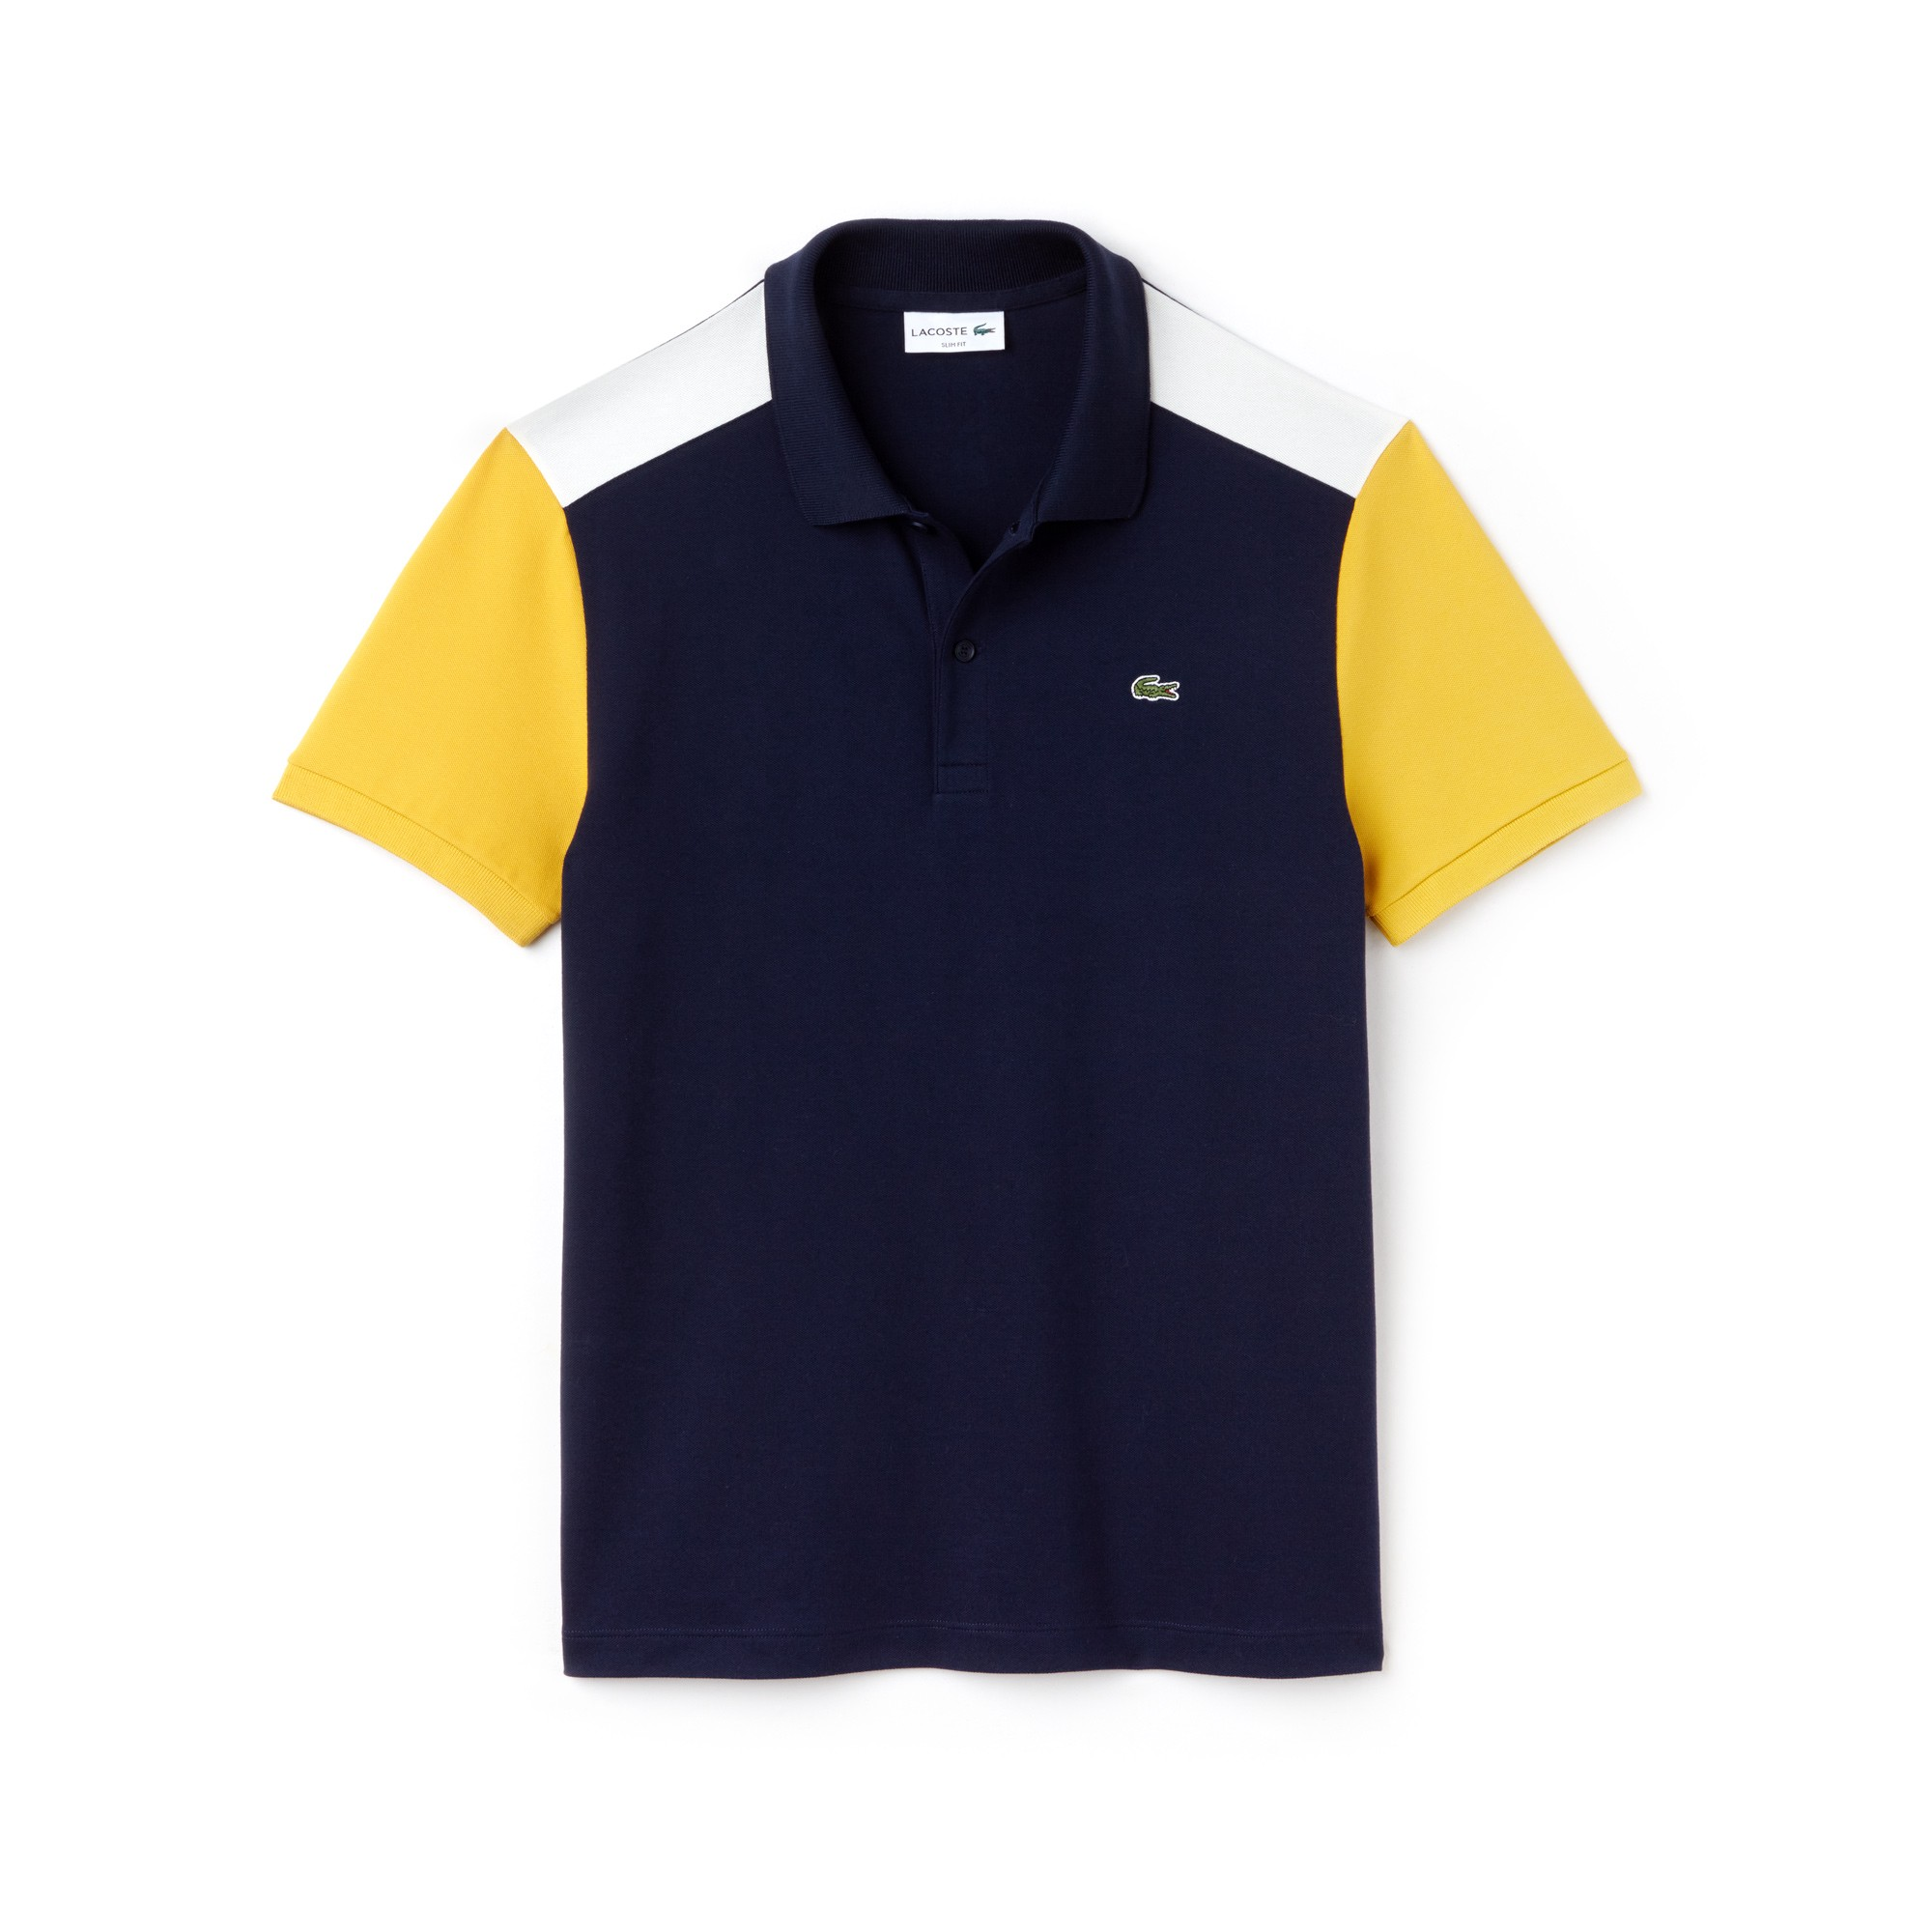 39aa486b90 Lacoste Men's Slim Fit Colorblock Stretch Pima Cotton Piqué Polo ...